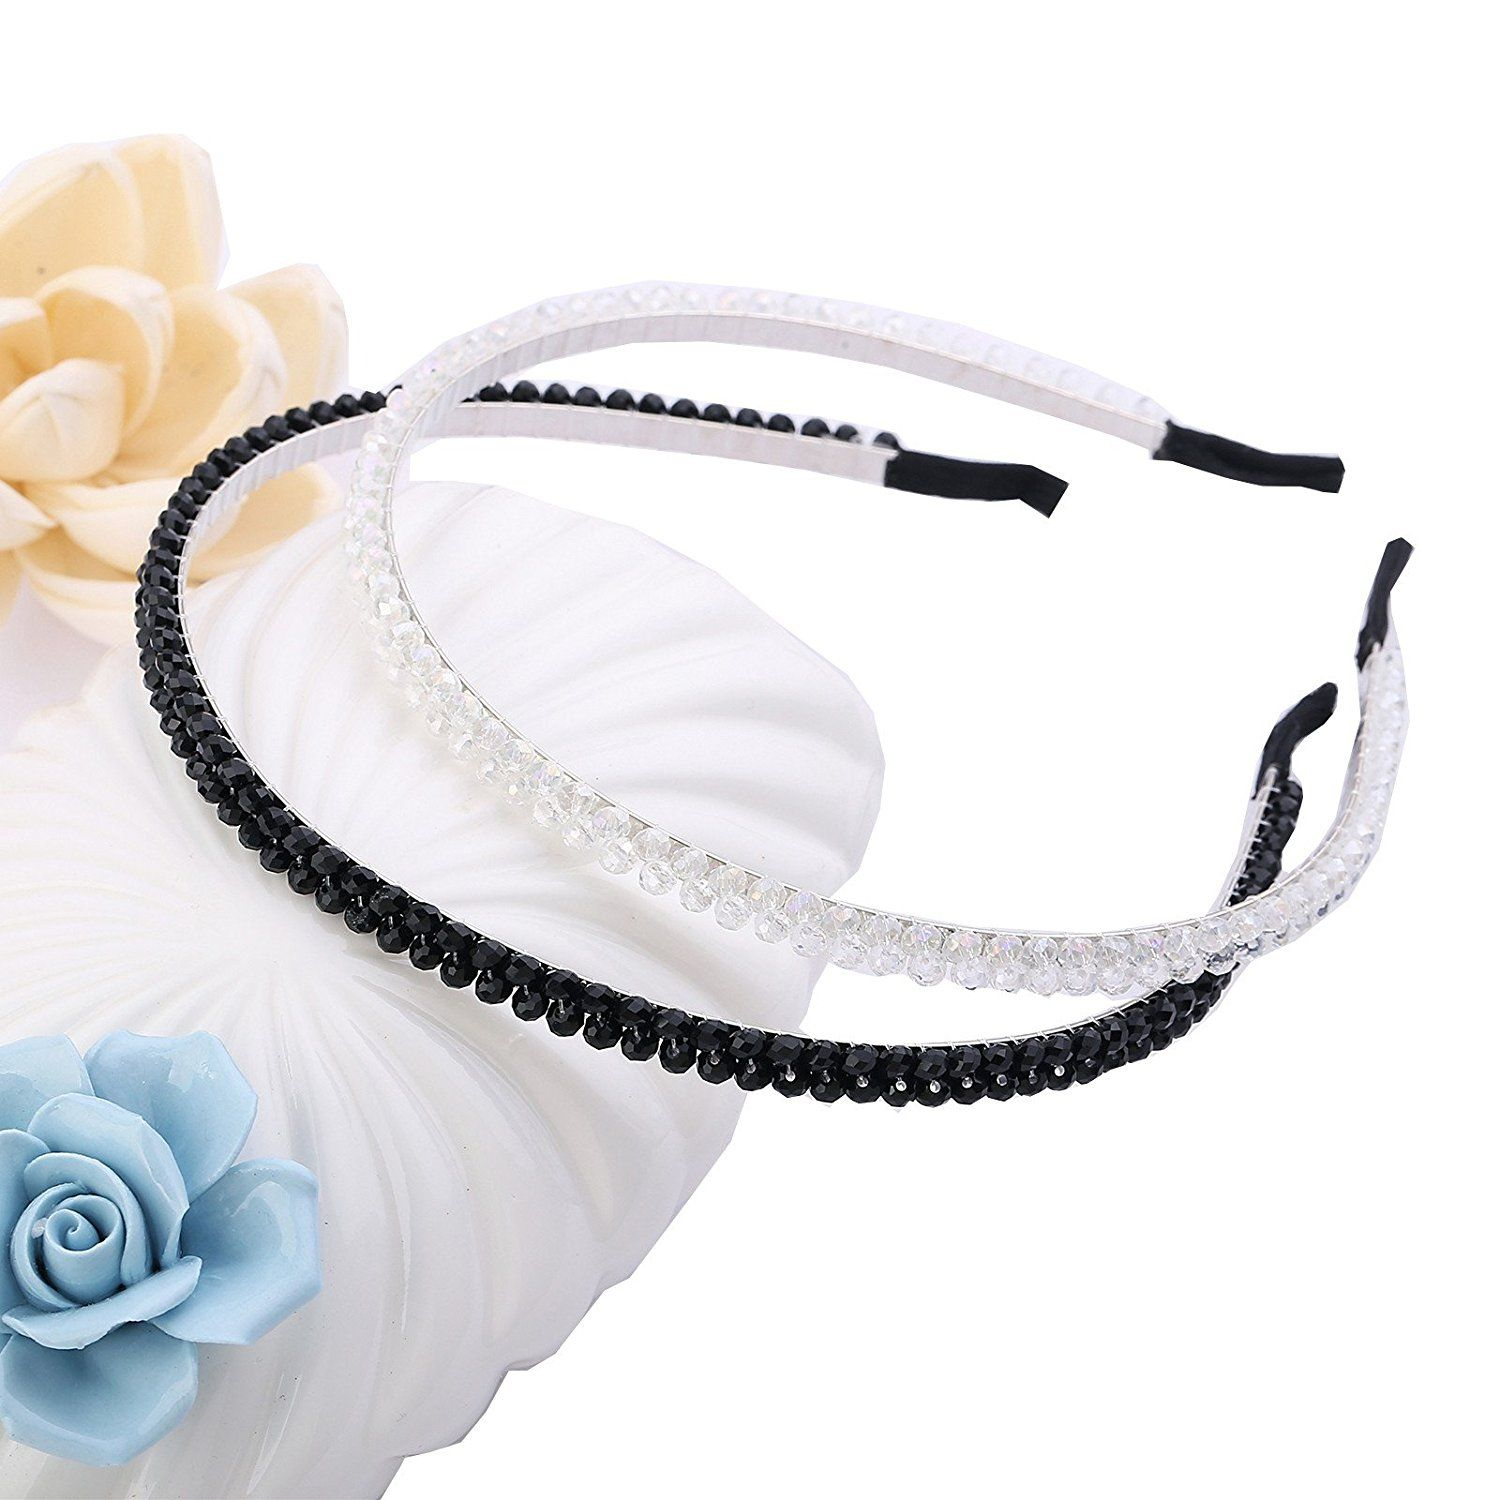 Cfrmall Girls / Women Ribbon or Jewelry Crystal Pearl Headbands (2Pcs Set Girls / Women Double Row WhiteandBlack Crystal Sparkle Headbands) * You can get more details by clicking on the image. (Amazon affiliate link)